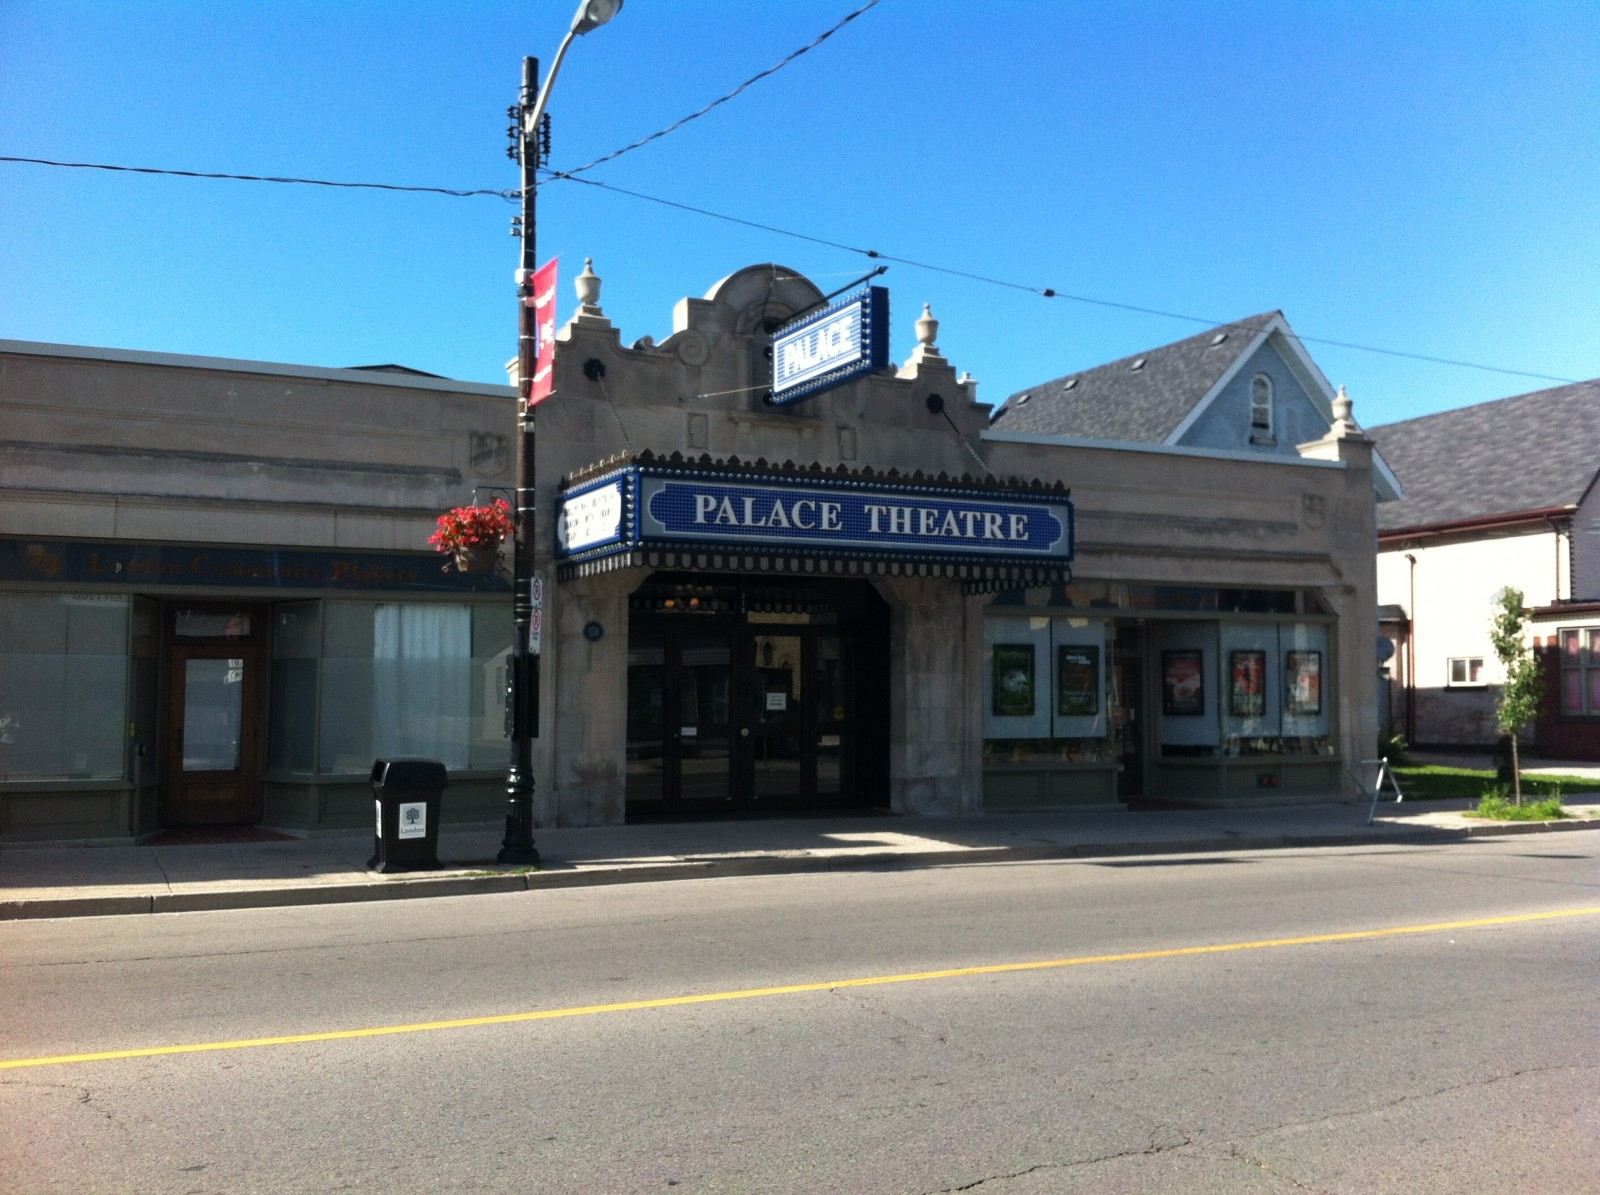 Palace Theatre hoping City Council approves funding request